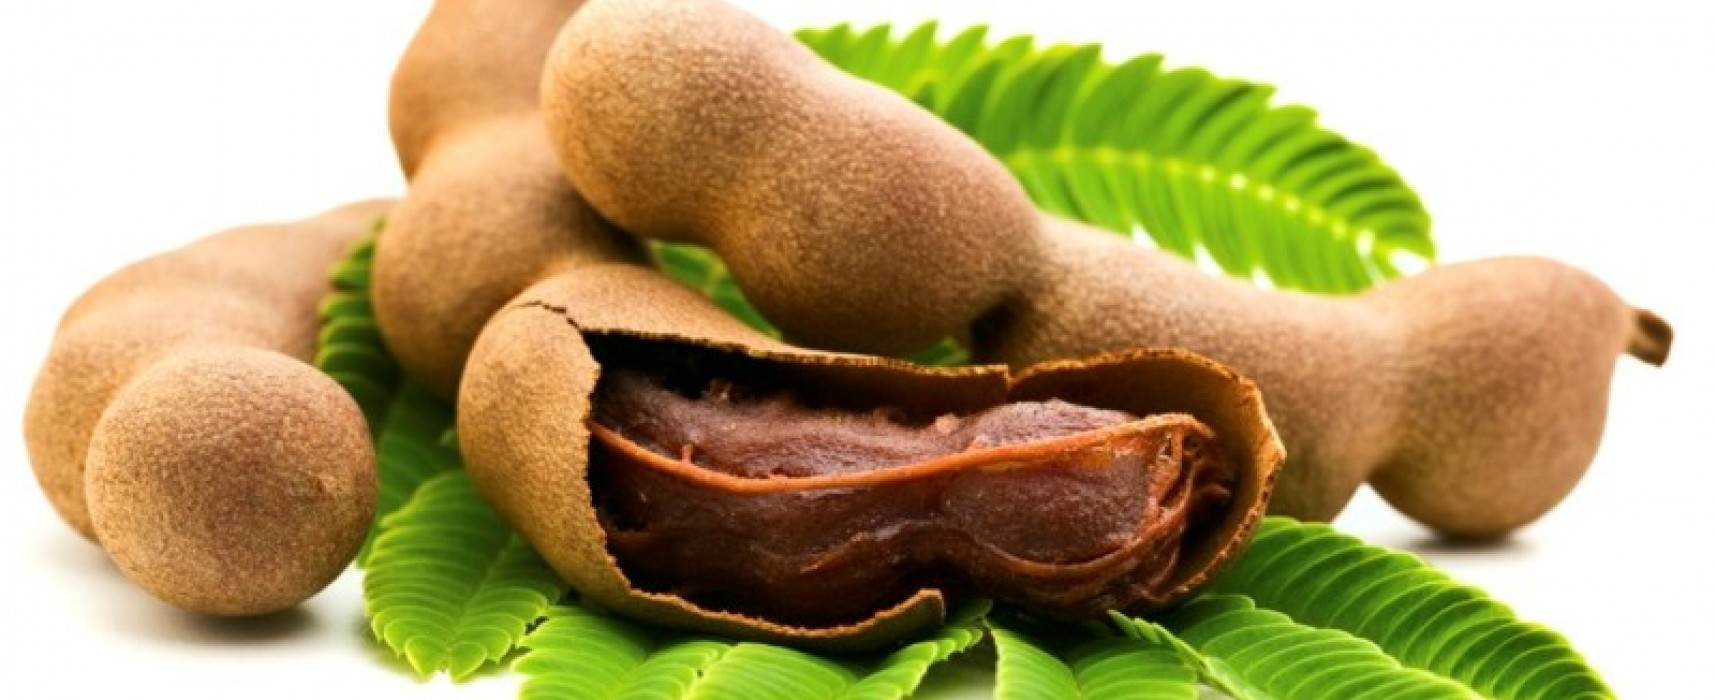 The Tamarind LOVE!